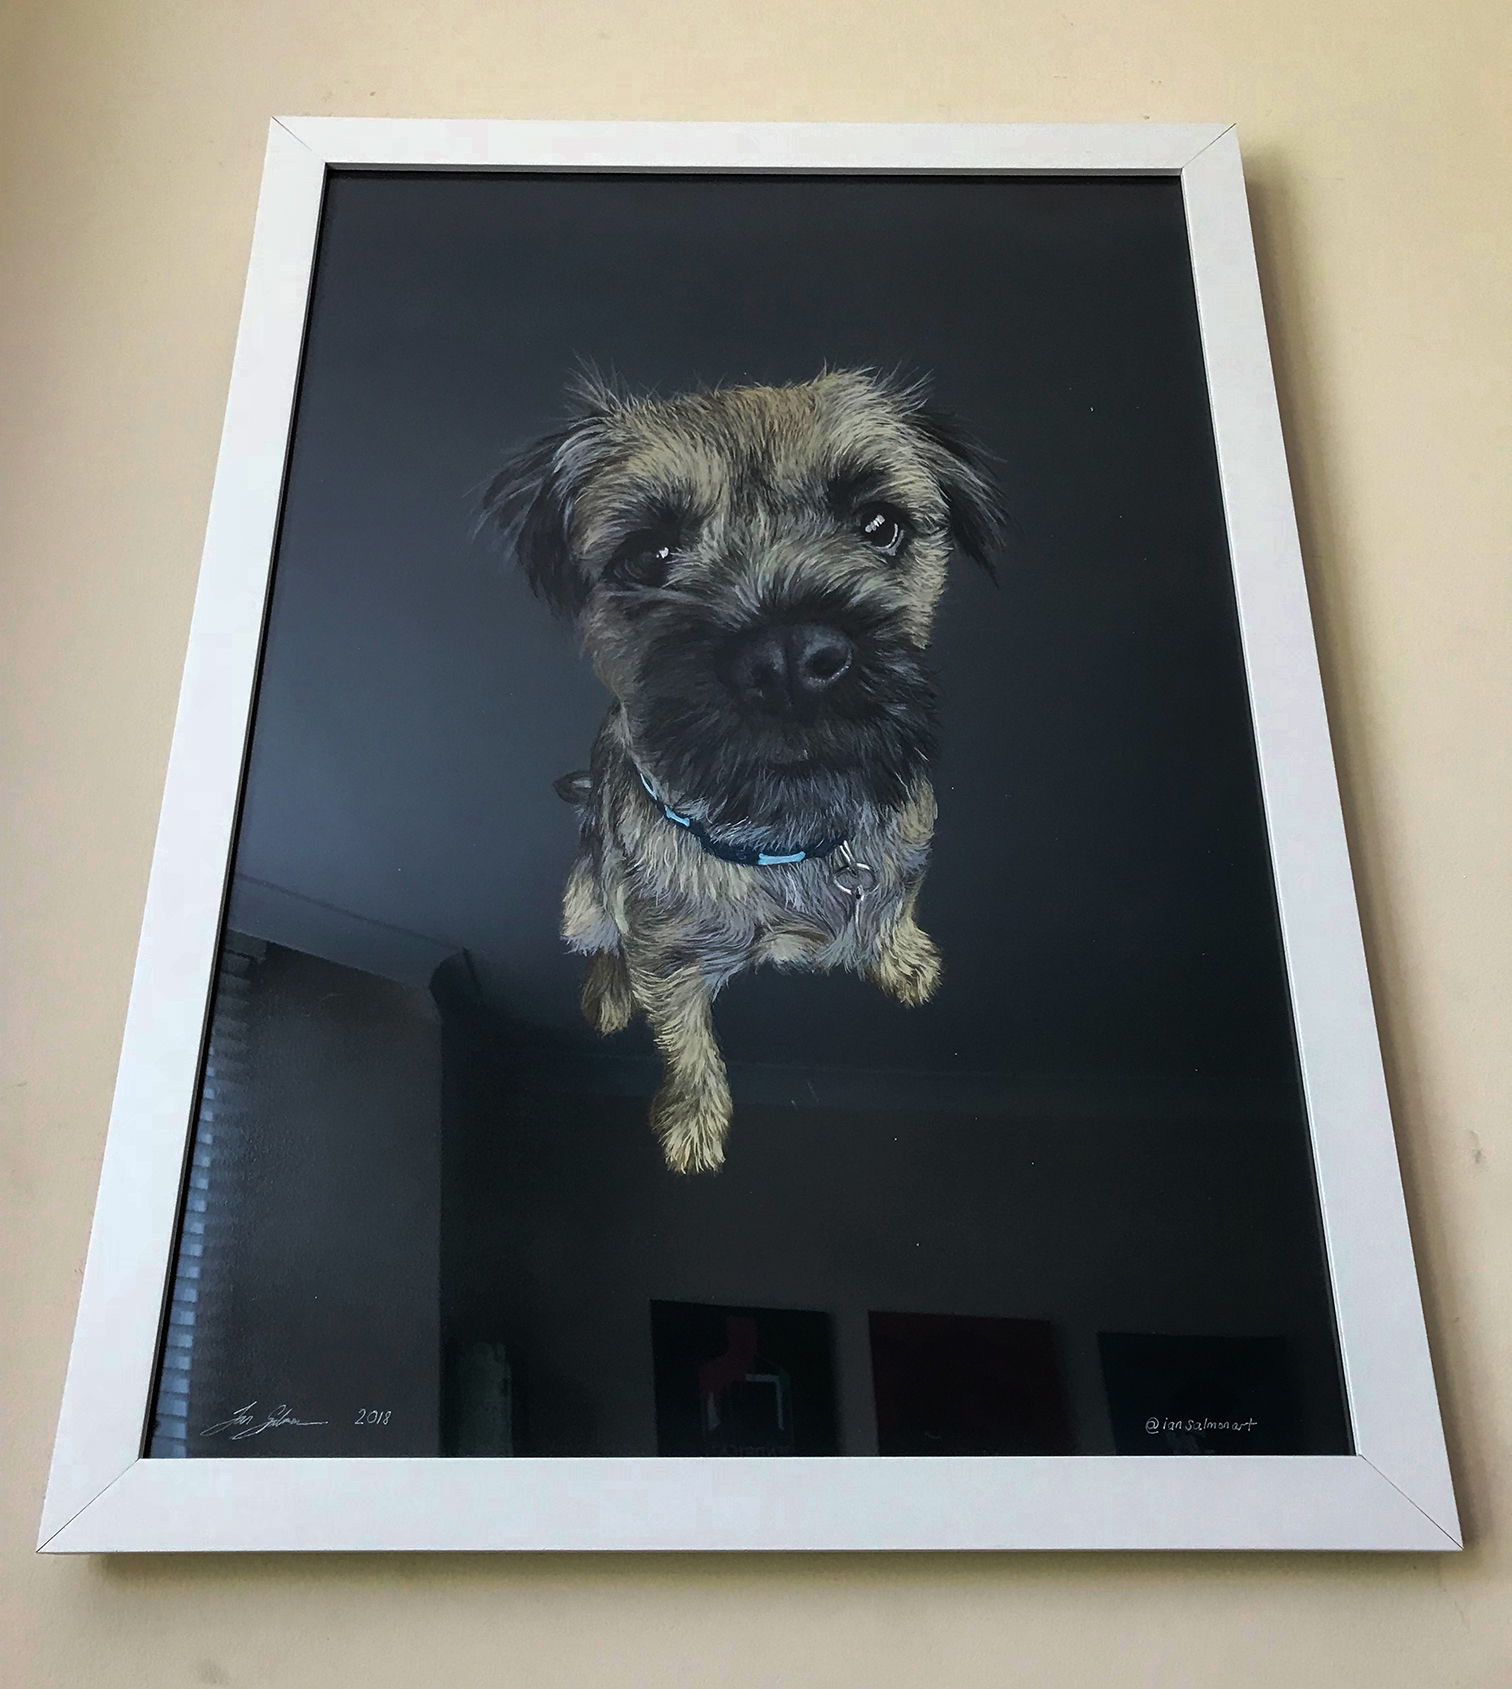 Martin - 07/08/18I first saw Ian's art on Instagram and was taken by a cool design featuring a dog. Since we were having our kitchen updated and I needed something funky for the walls I contacted Ian. Fast forward a few weeks and the portrait promptly arrived. And what a belter it is, great leftfield perspective and use of media - it now hangs pride of place in my new kitchen and The real Buddy loves it too! Can't recommend Ian enough, great value, great art- thank you!